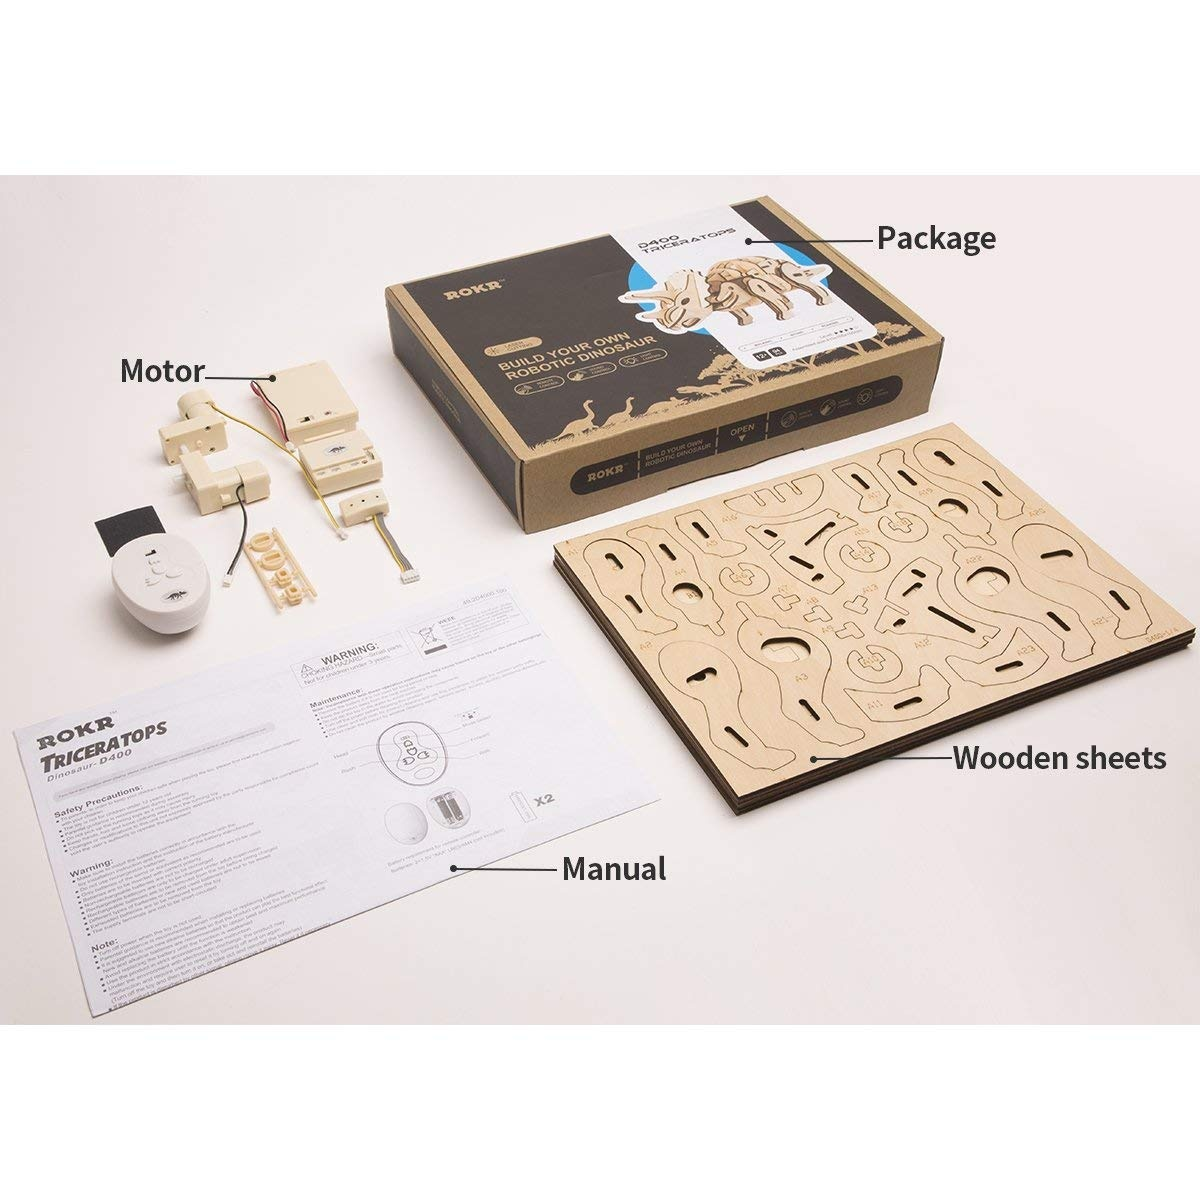 ROKR 3D Wooden Puzzle Build Your Own Robotic Dinosaur Toys for Boys, Kids  and Adults, Remote & Sound & Light Control